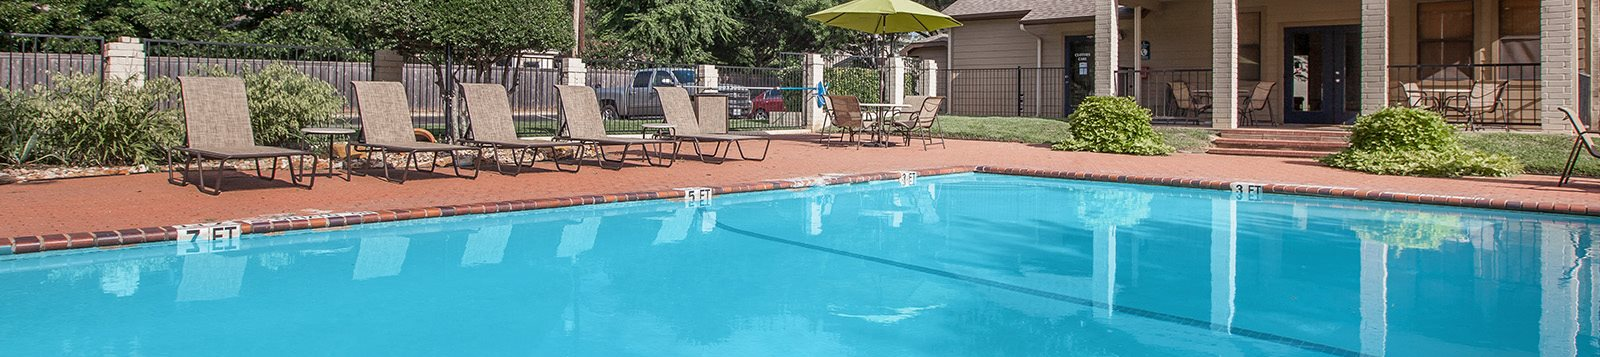 Pool and lounge chairs l Georgetown Park Apartments for rent in TX